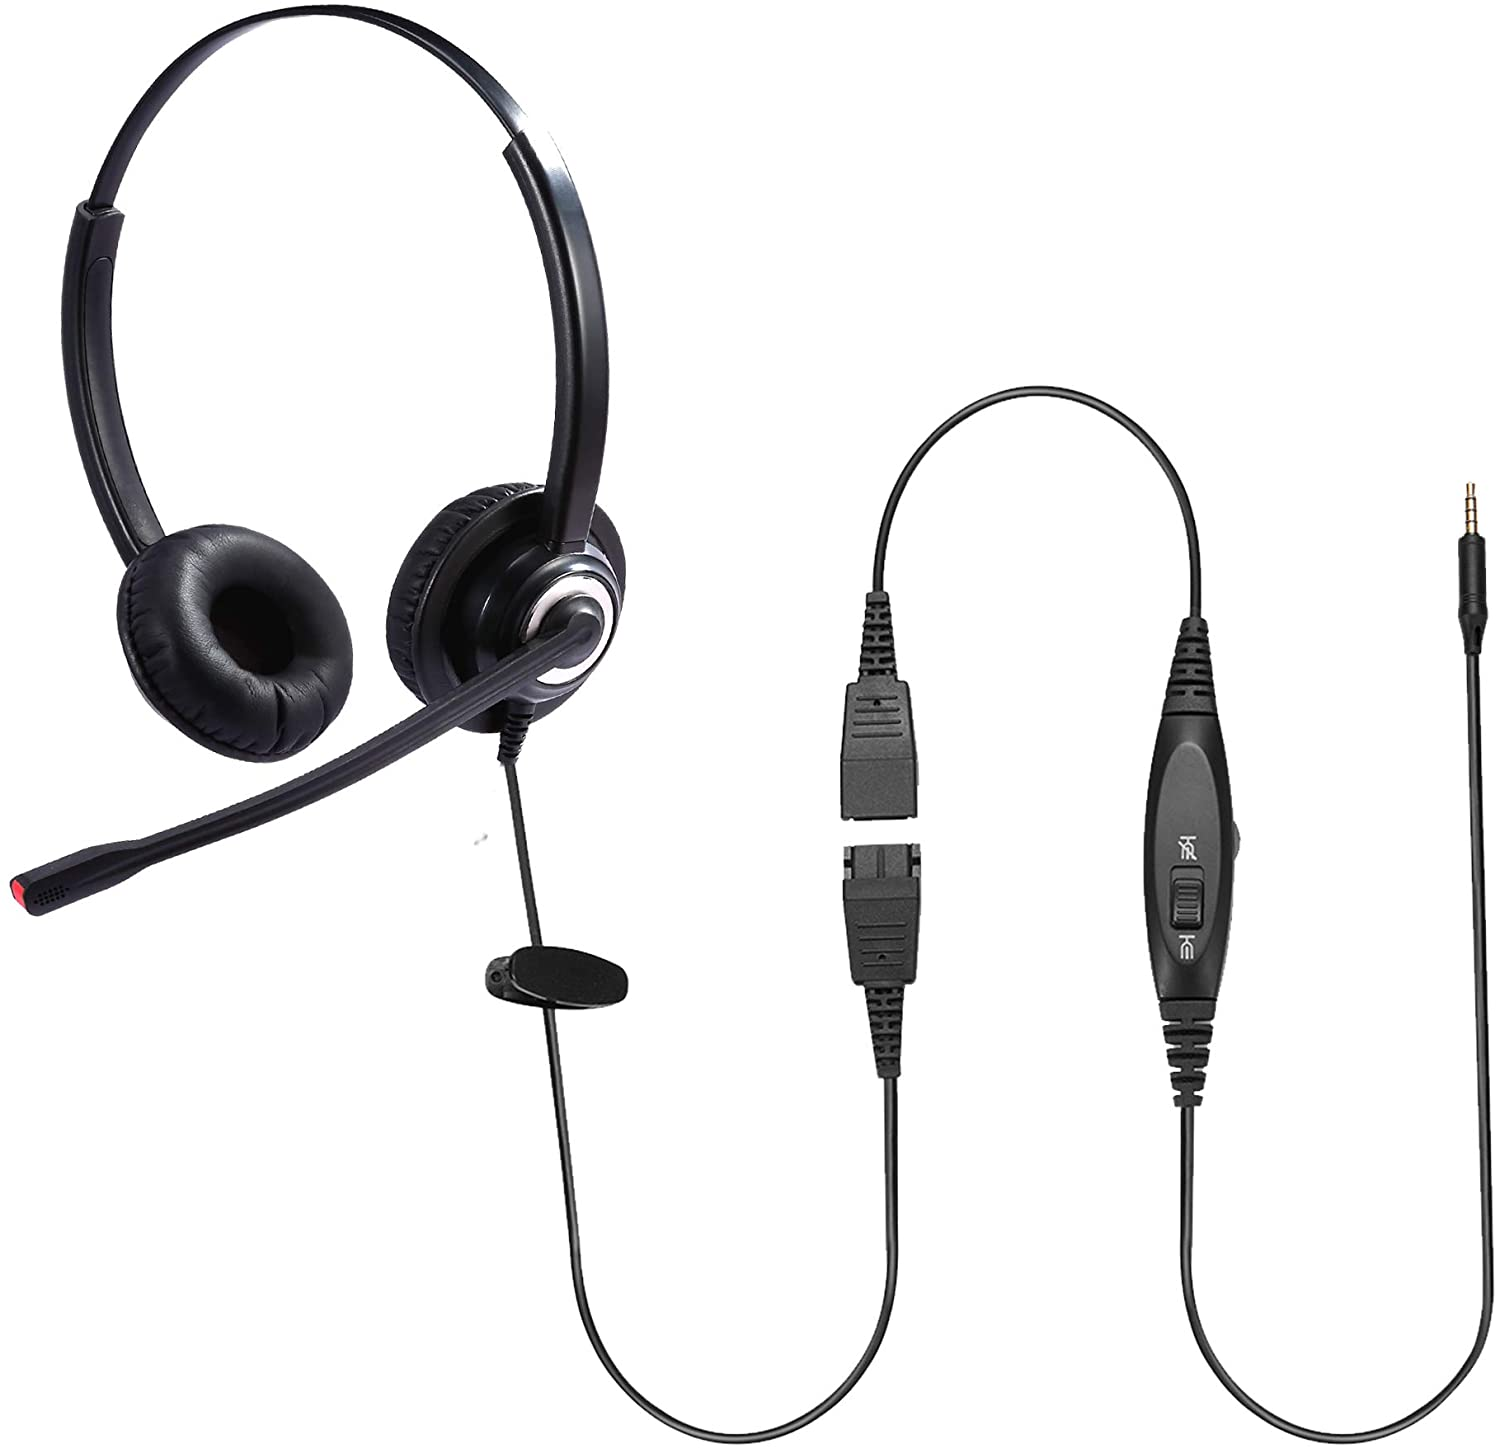 Sinseng Cell Phone Headset with Microphone Noise Cancelling & Audio Controls Wired Computer Headphone for iPhone Samsung Huawei HTC ZTE BlackBerry Smartphones and Laptop PC Mac Tablet with 3.5mm Jack